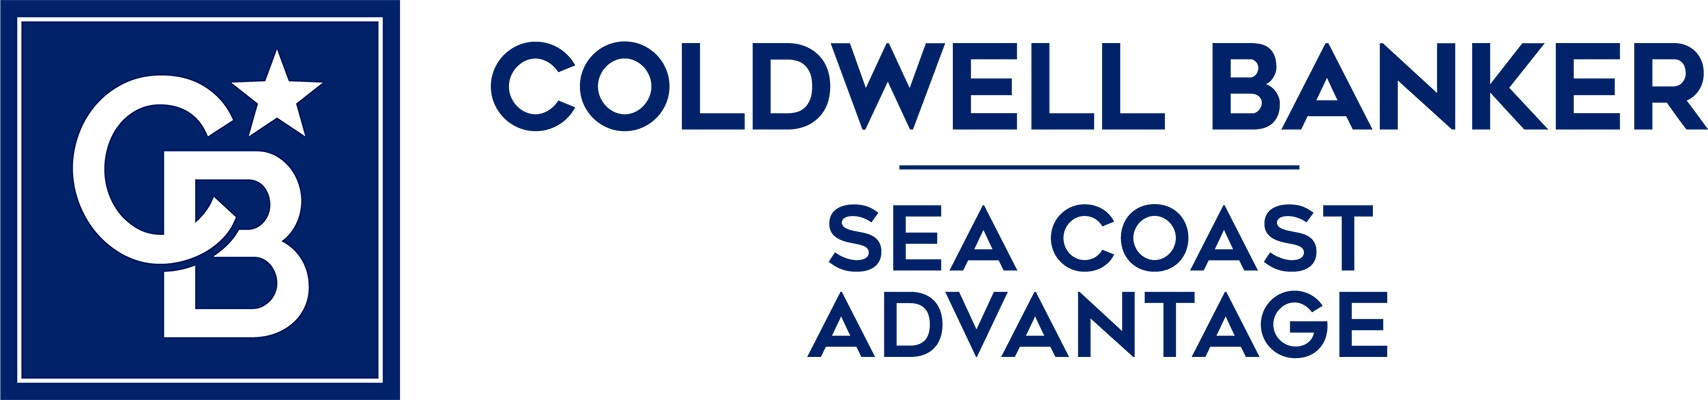 Susan Jarman - Coldwell Banker Sea Coast Advantage Realty Logo